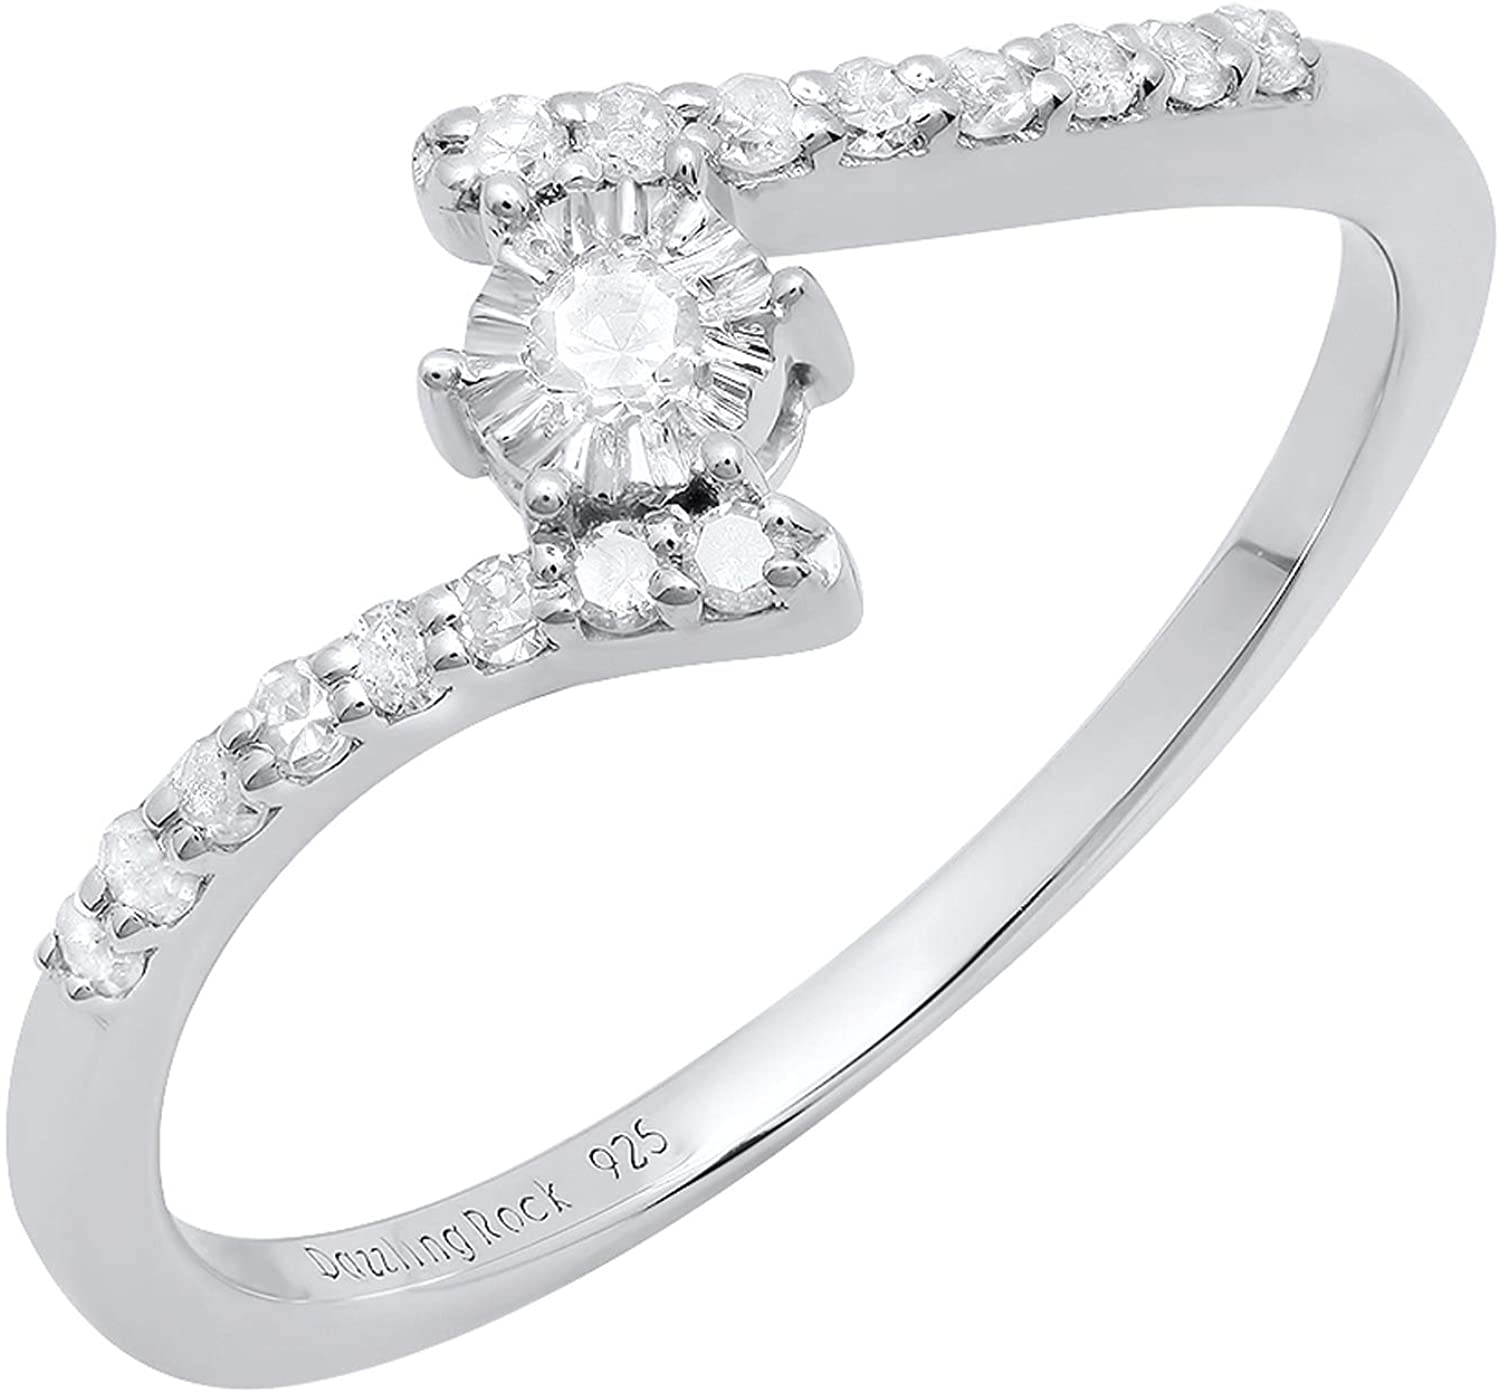 Dazzlingrock Collection 0.20 Carat (ctw) Round Diamond Ladies Bypass Style Engagement Ring 1/5 CT, Sterling Silver